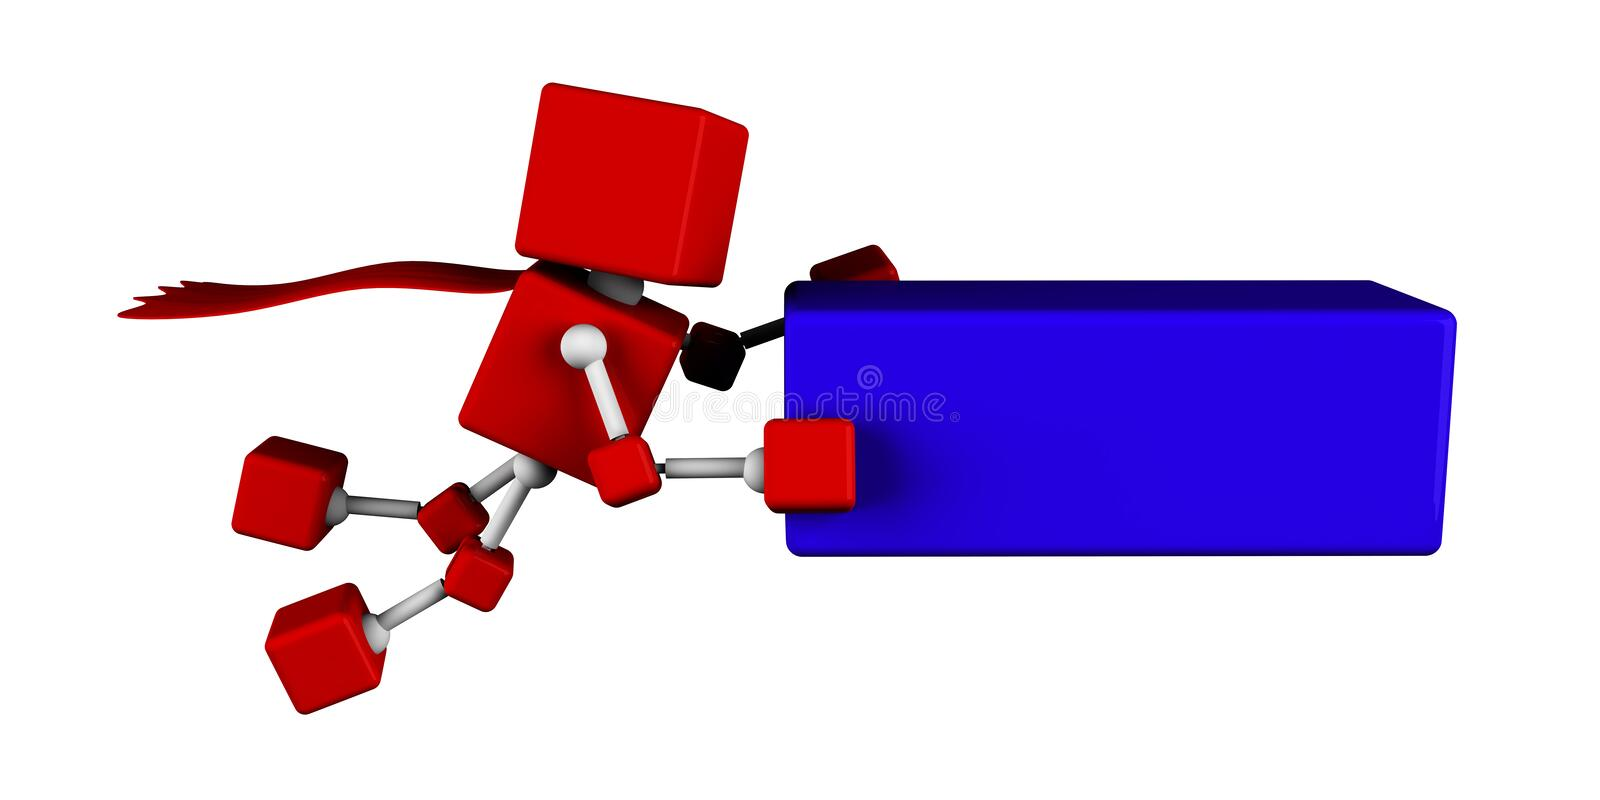 Illustration of 3d character superhero red cube fly carrying a blue cube stock illustration